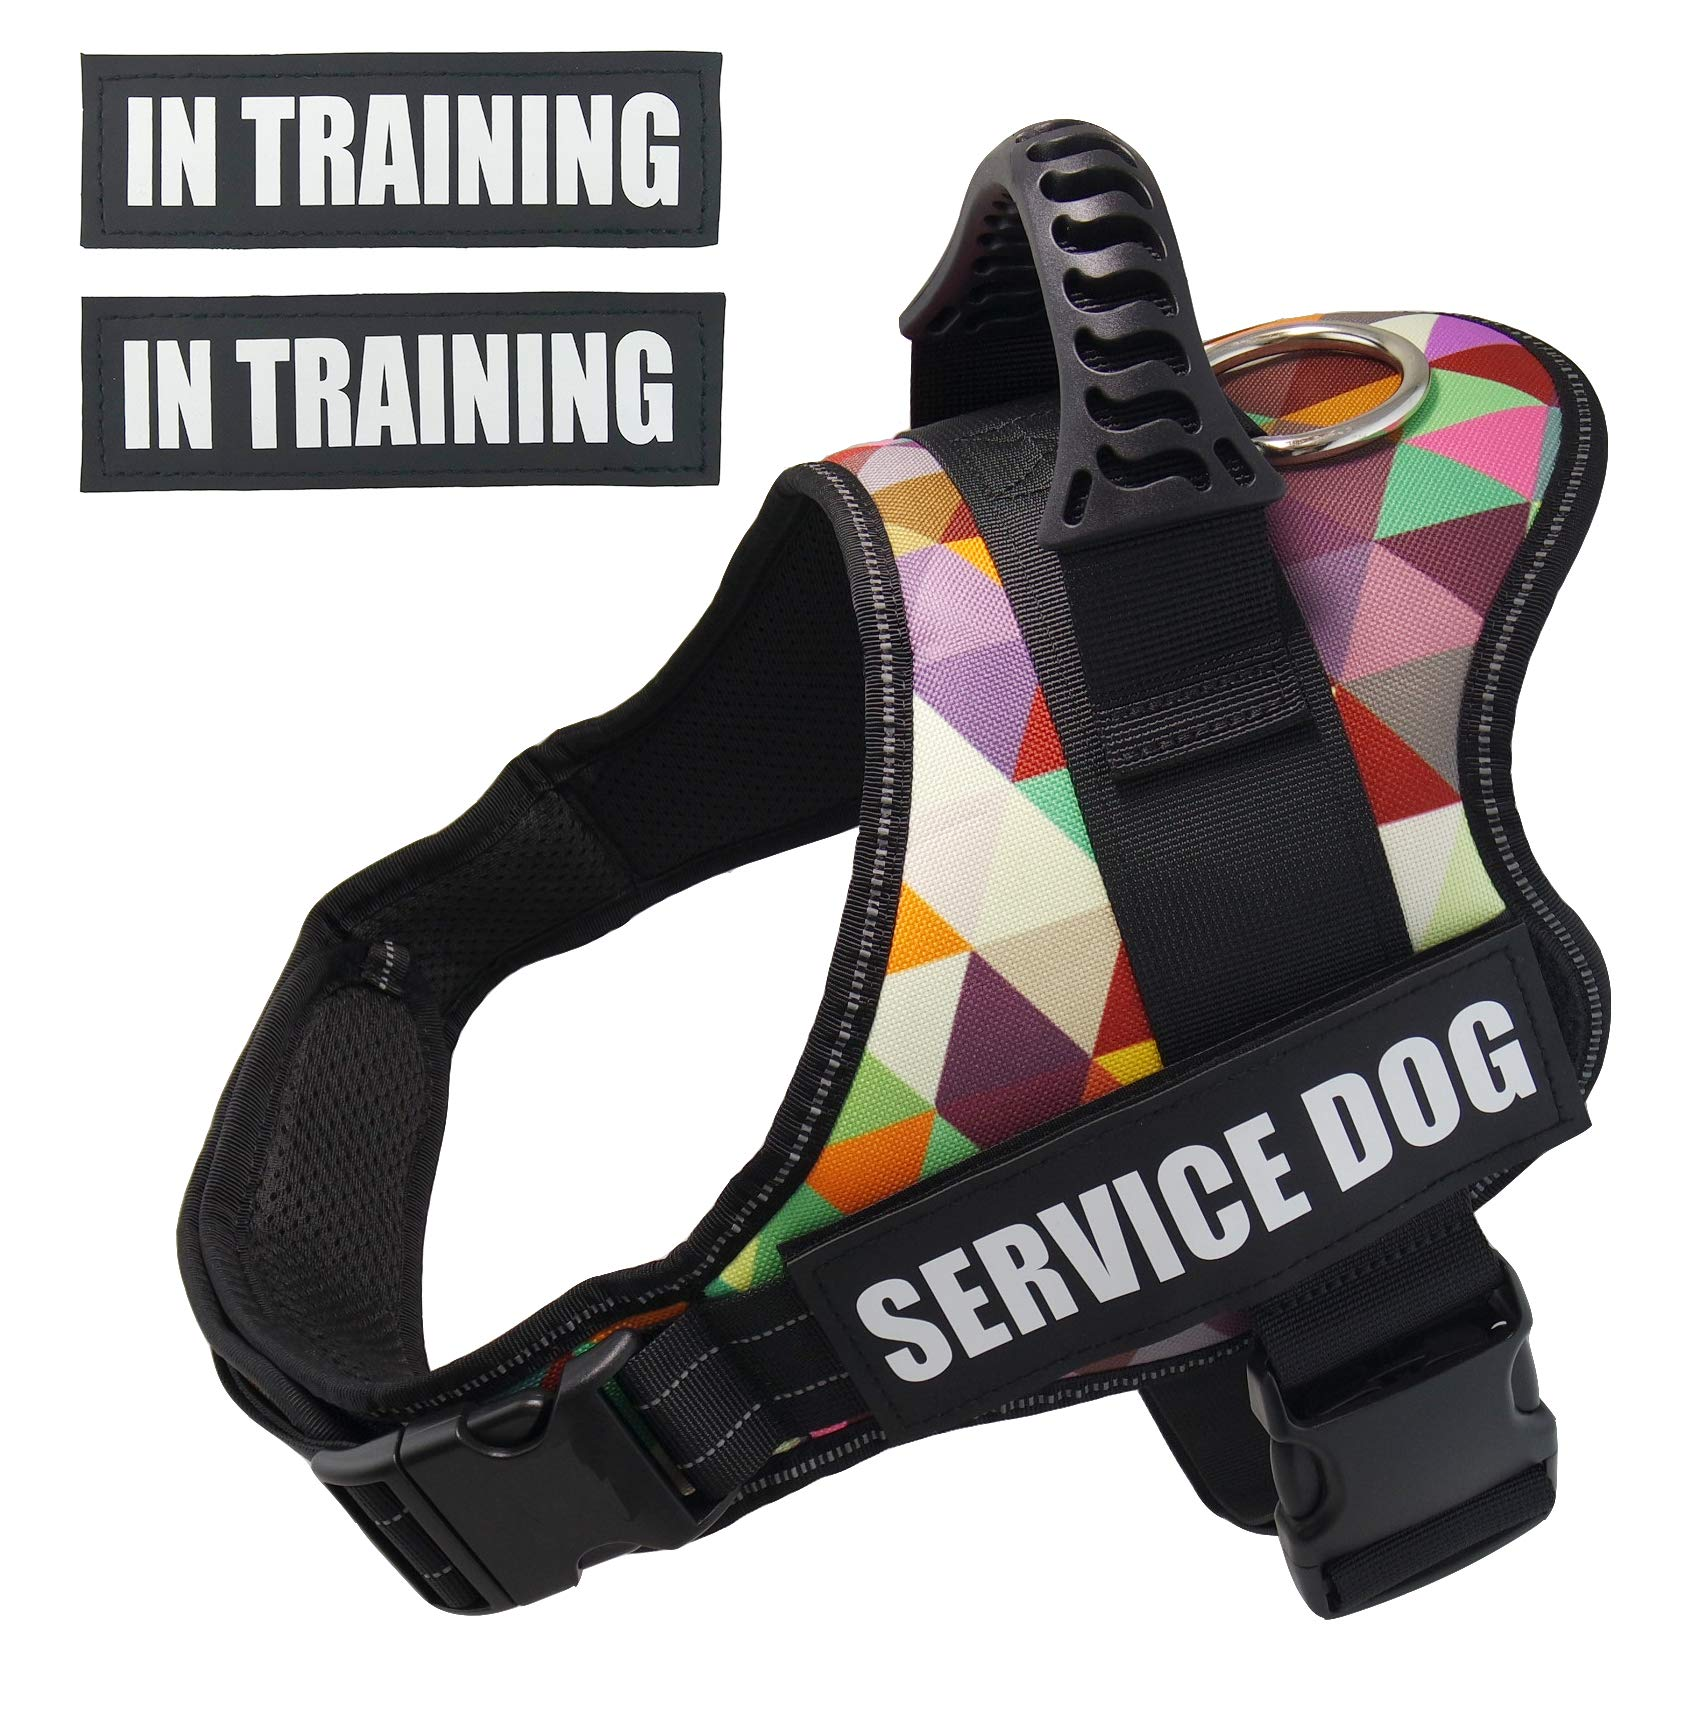 Dihapet Service Dog Vest, No-Pull Reflective Dog Harness for Small Medium Large Dogs, Adjustable Dog Training Walking Harnesses Safety Vest, L